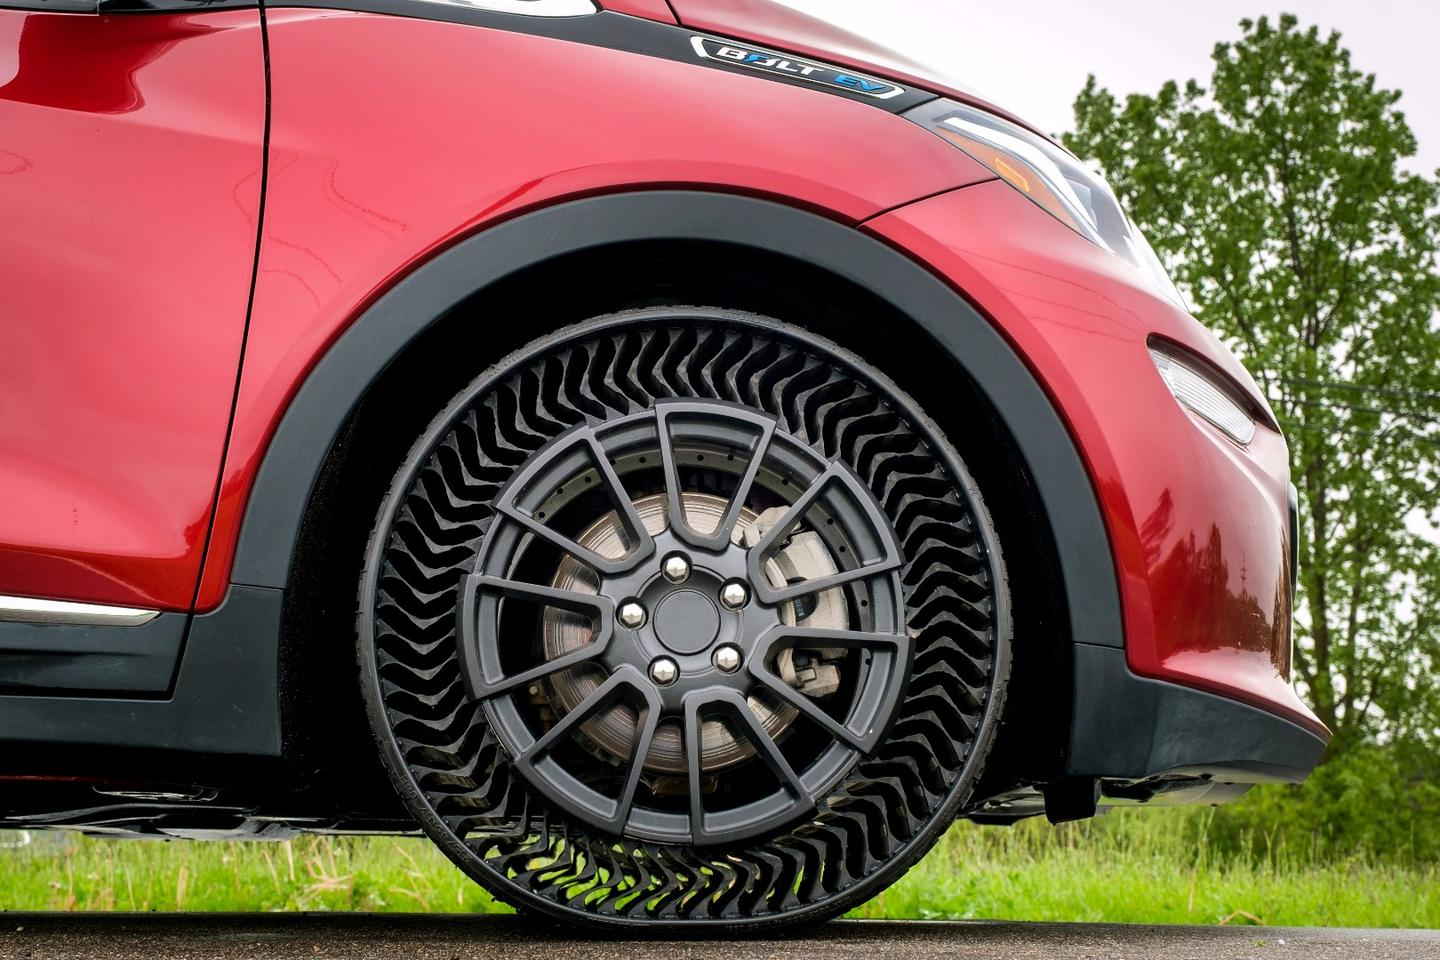 Michelin and GMwill be testing the Uptis airless tire on a fleet of Chevrolet Bolt electric cars in Michigan laterthis year